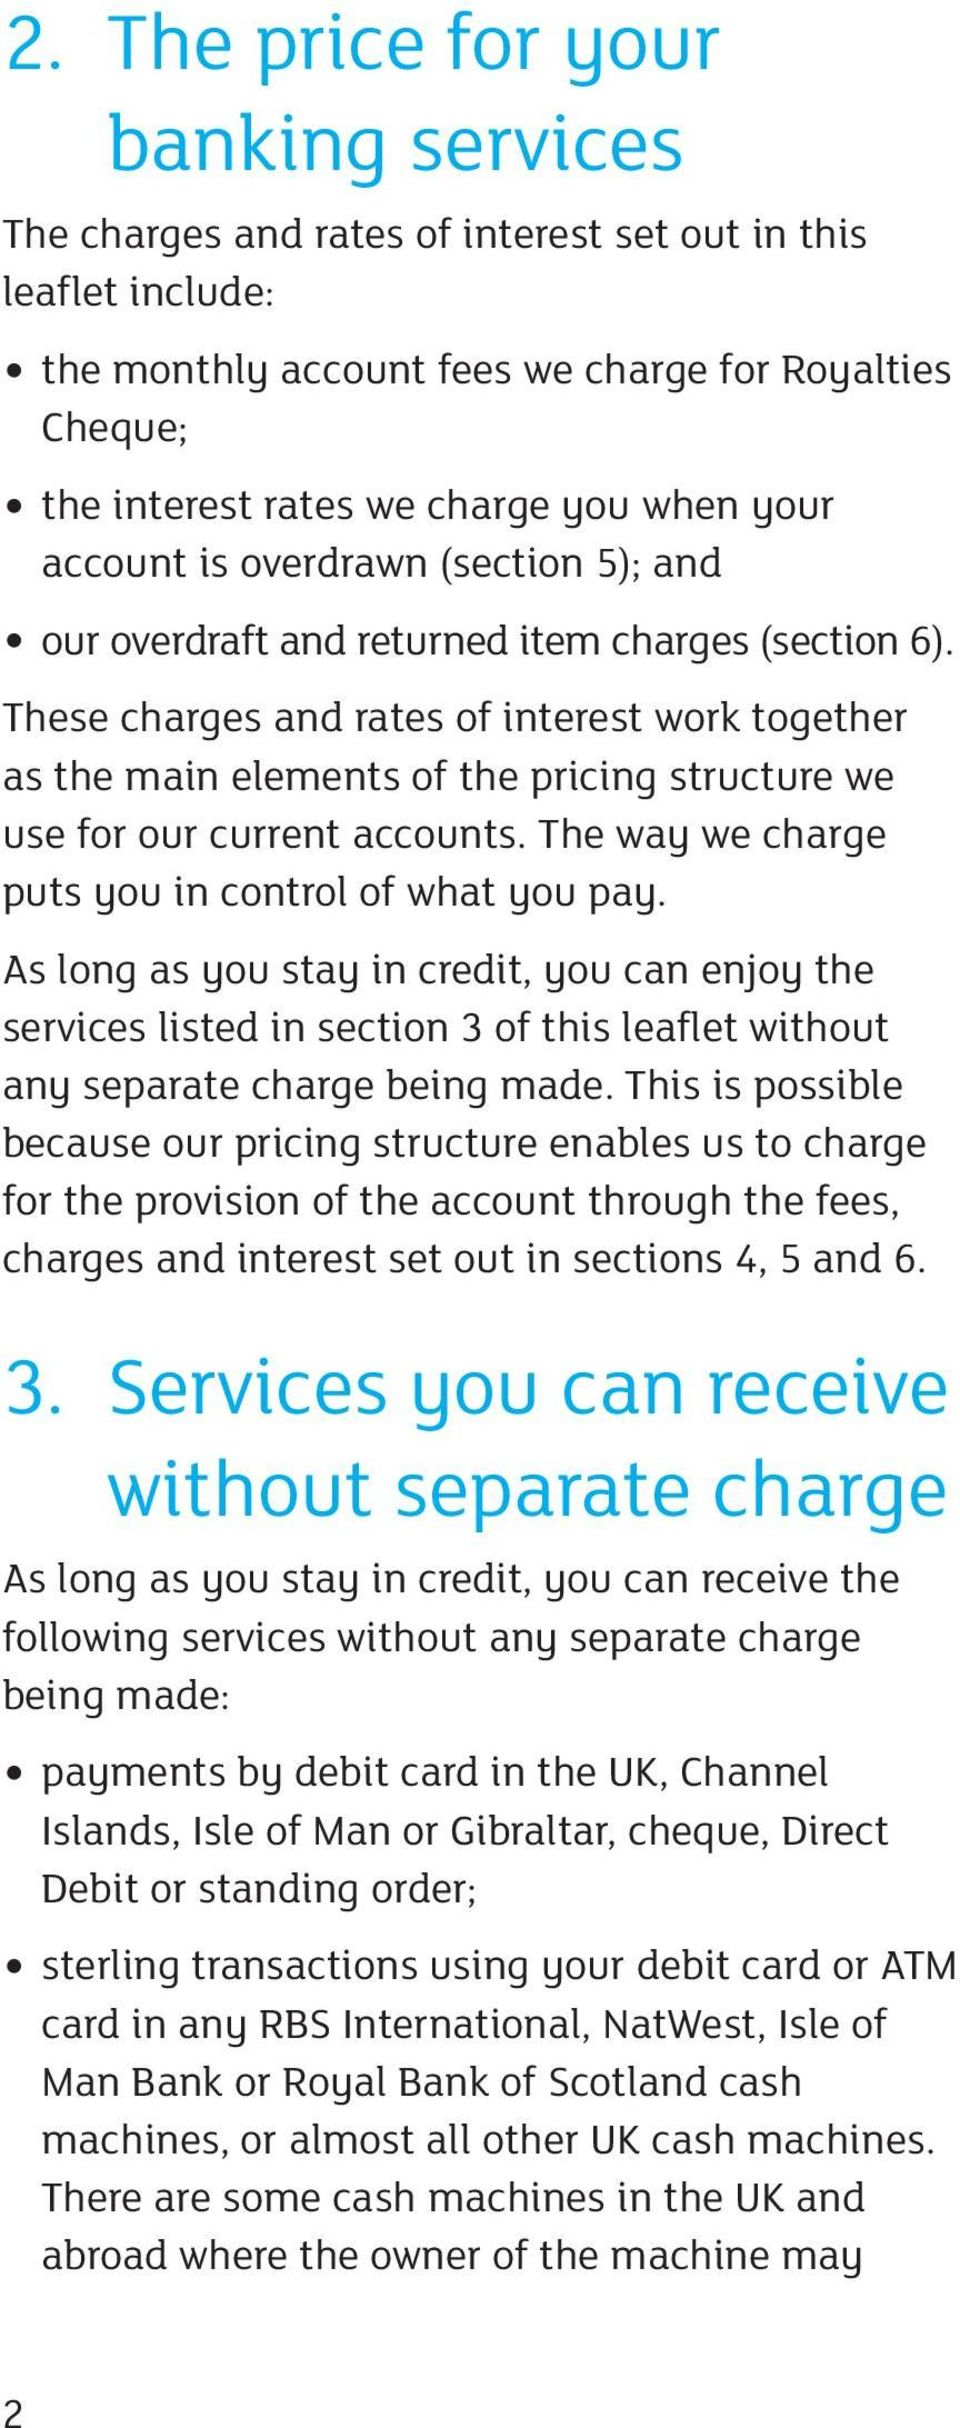 These charges and rates of interest work together as the main elements of the pricing structure we use for our current accounts. The way we charge puts you in control of what you pay.